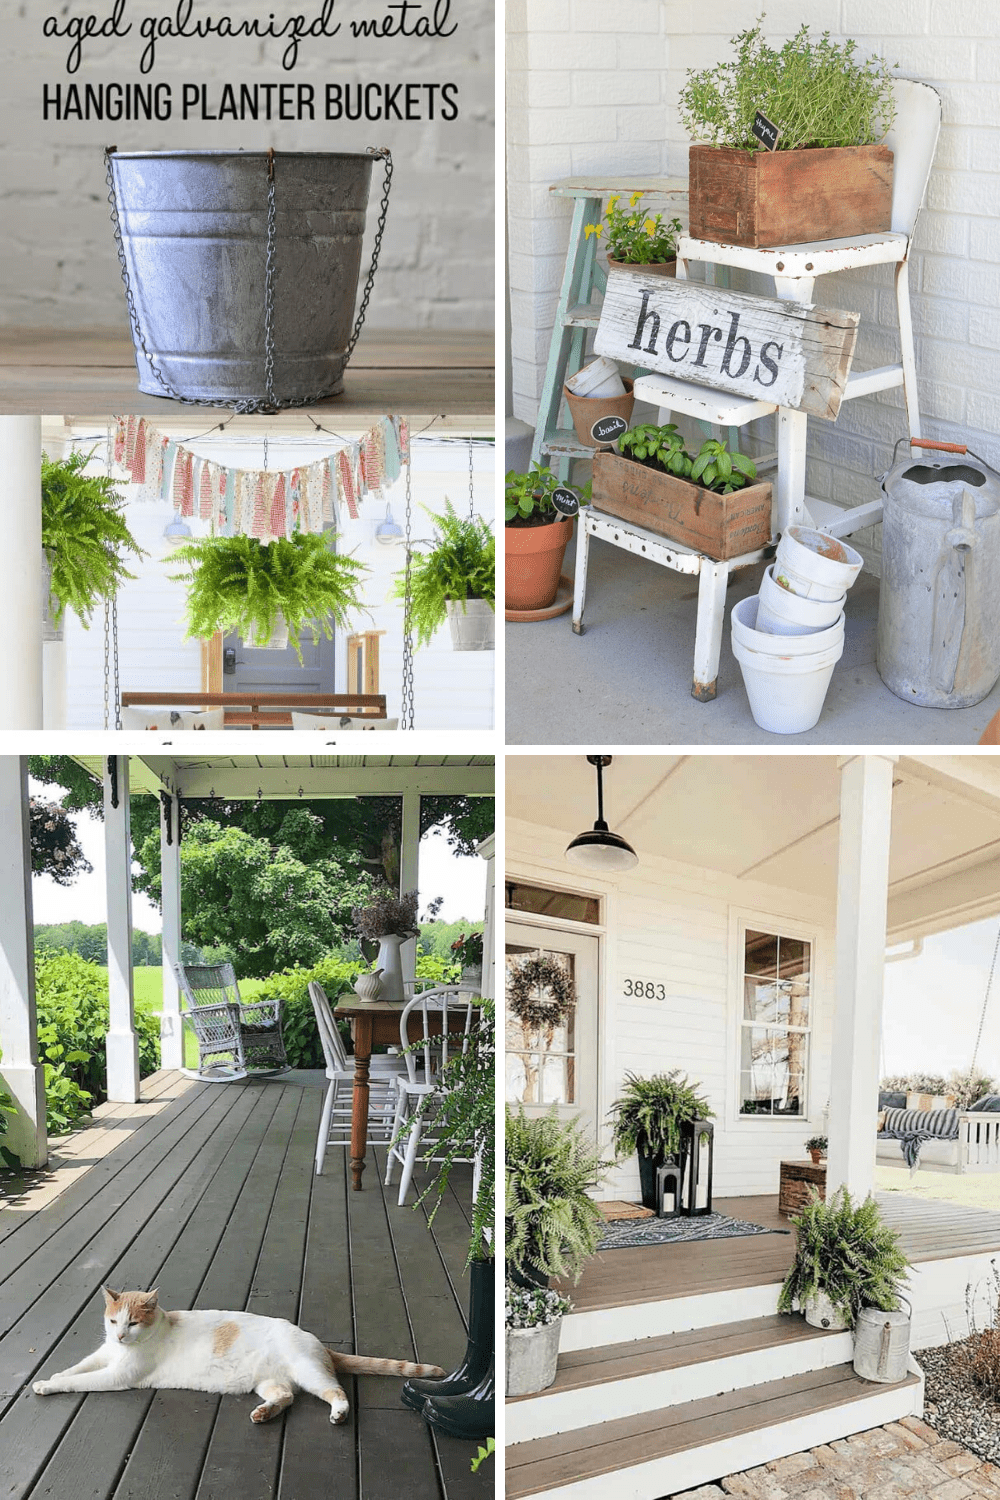 Farmhouse porch or outdoor decorating ideas are just in time for spring, summer or fall enjoyment.